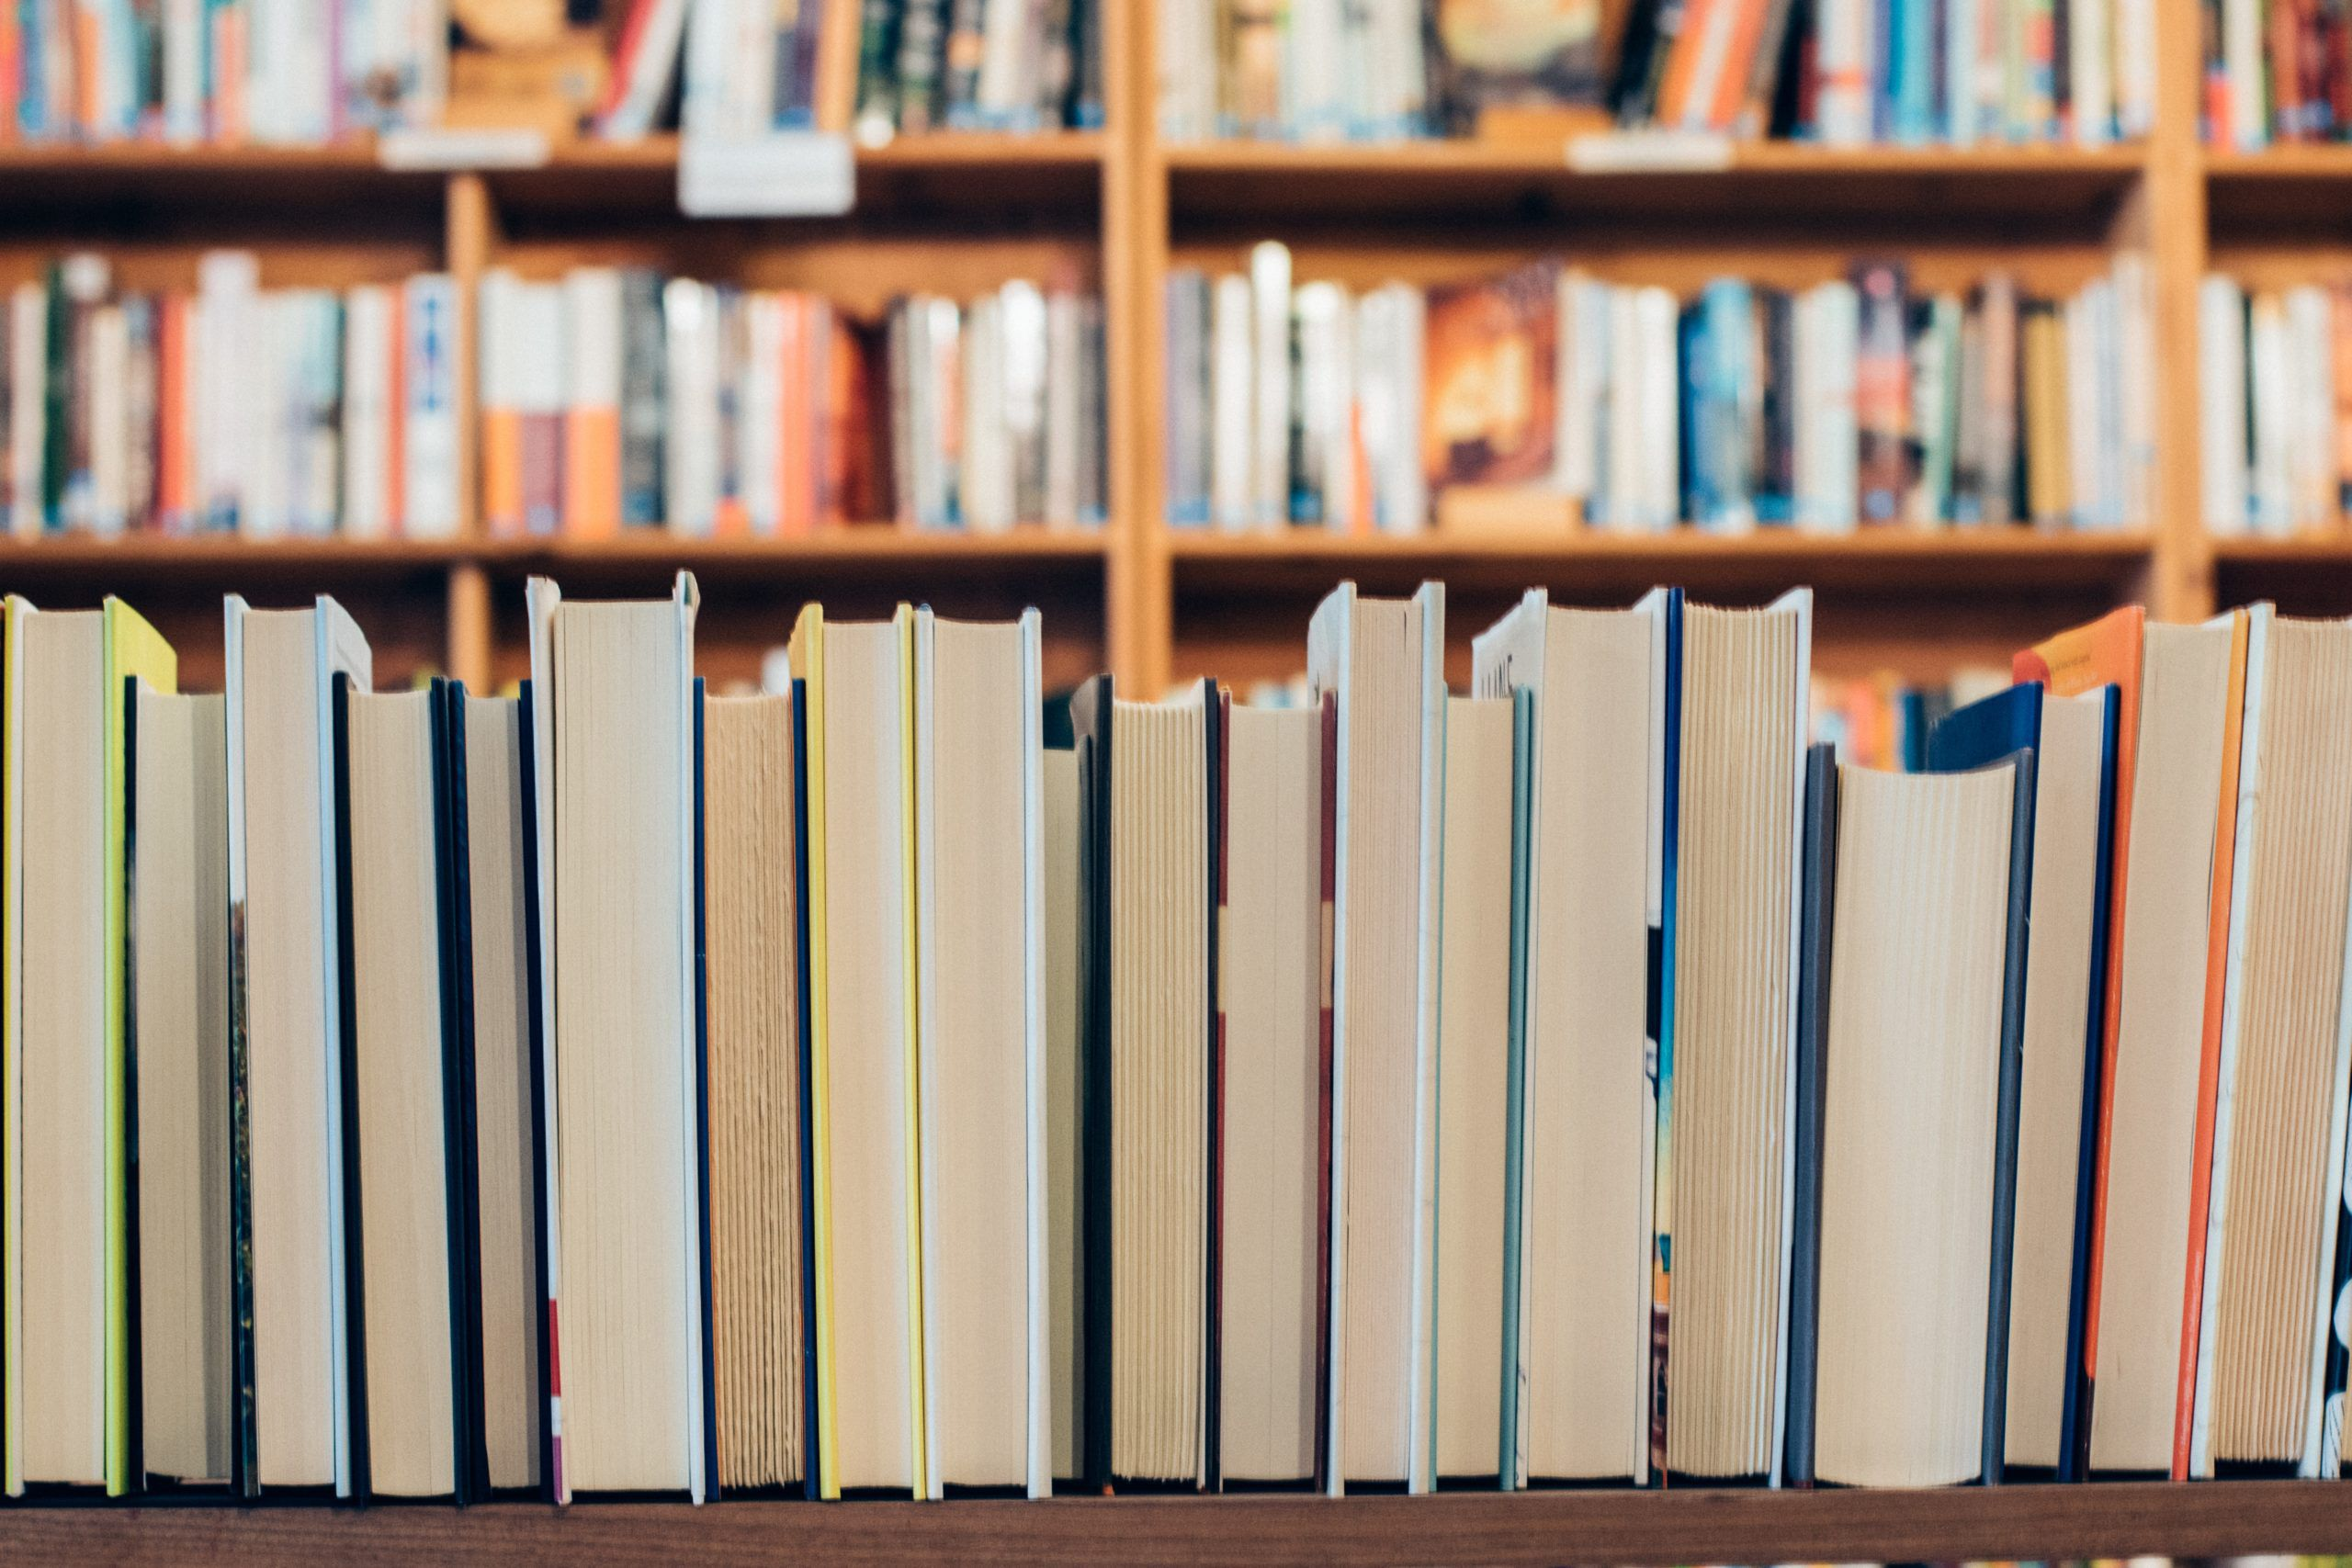 a shelf of books viewed spines facing away